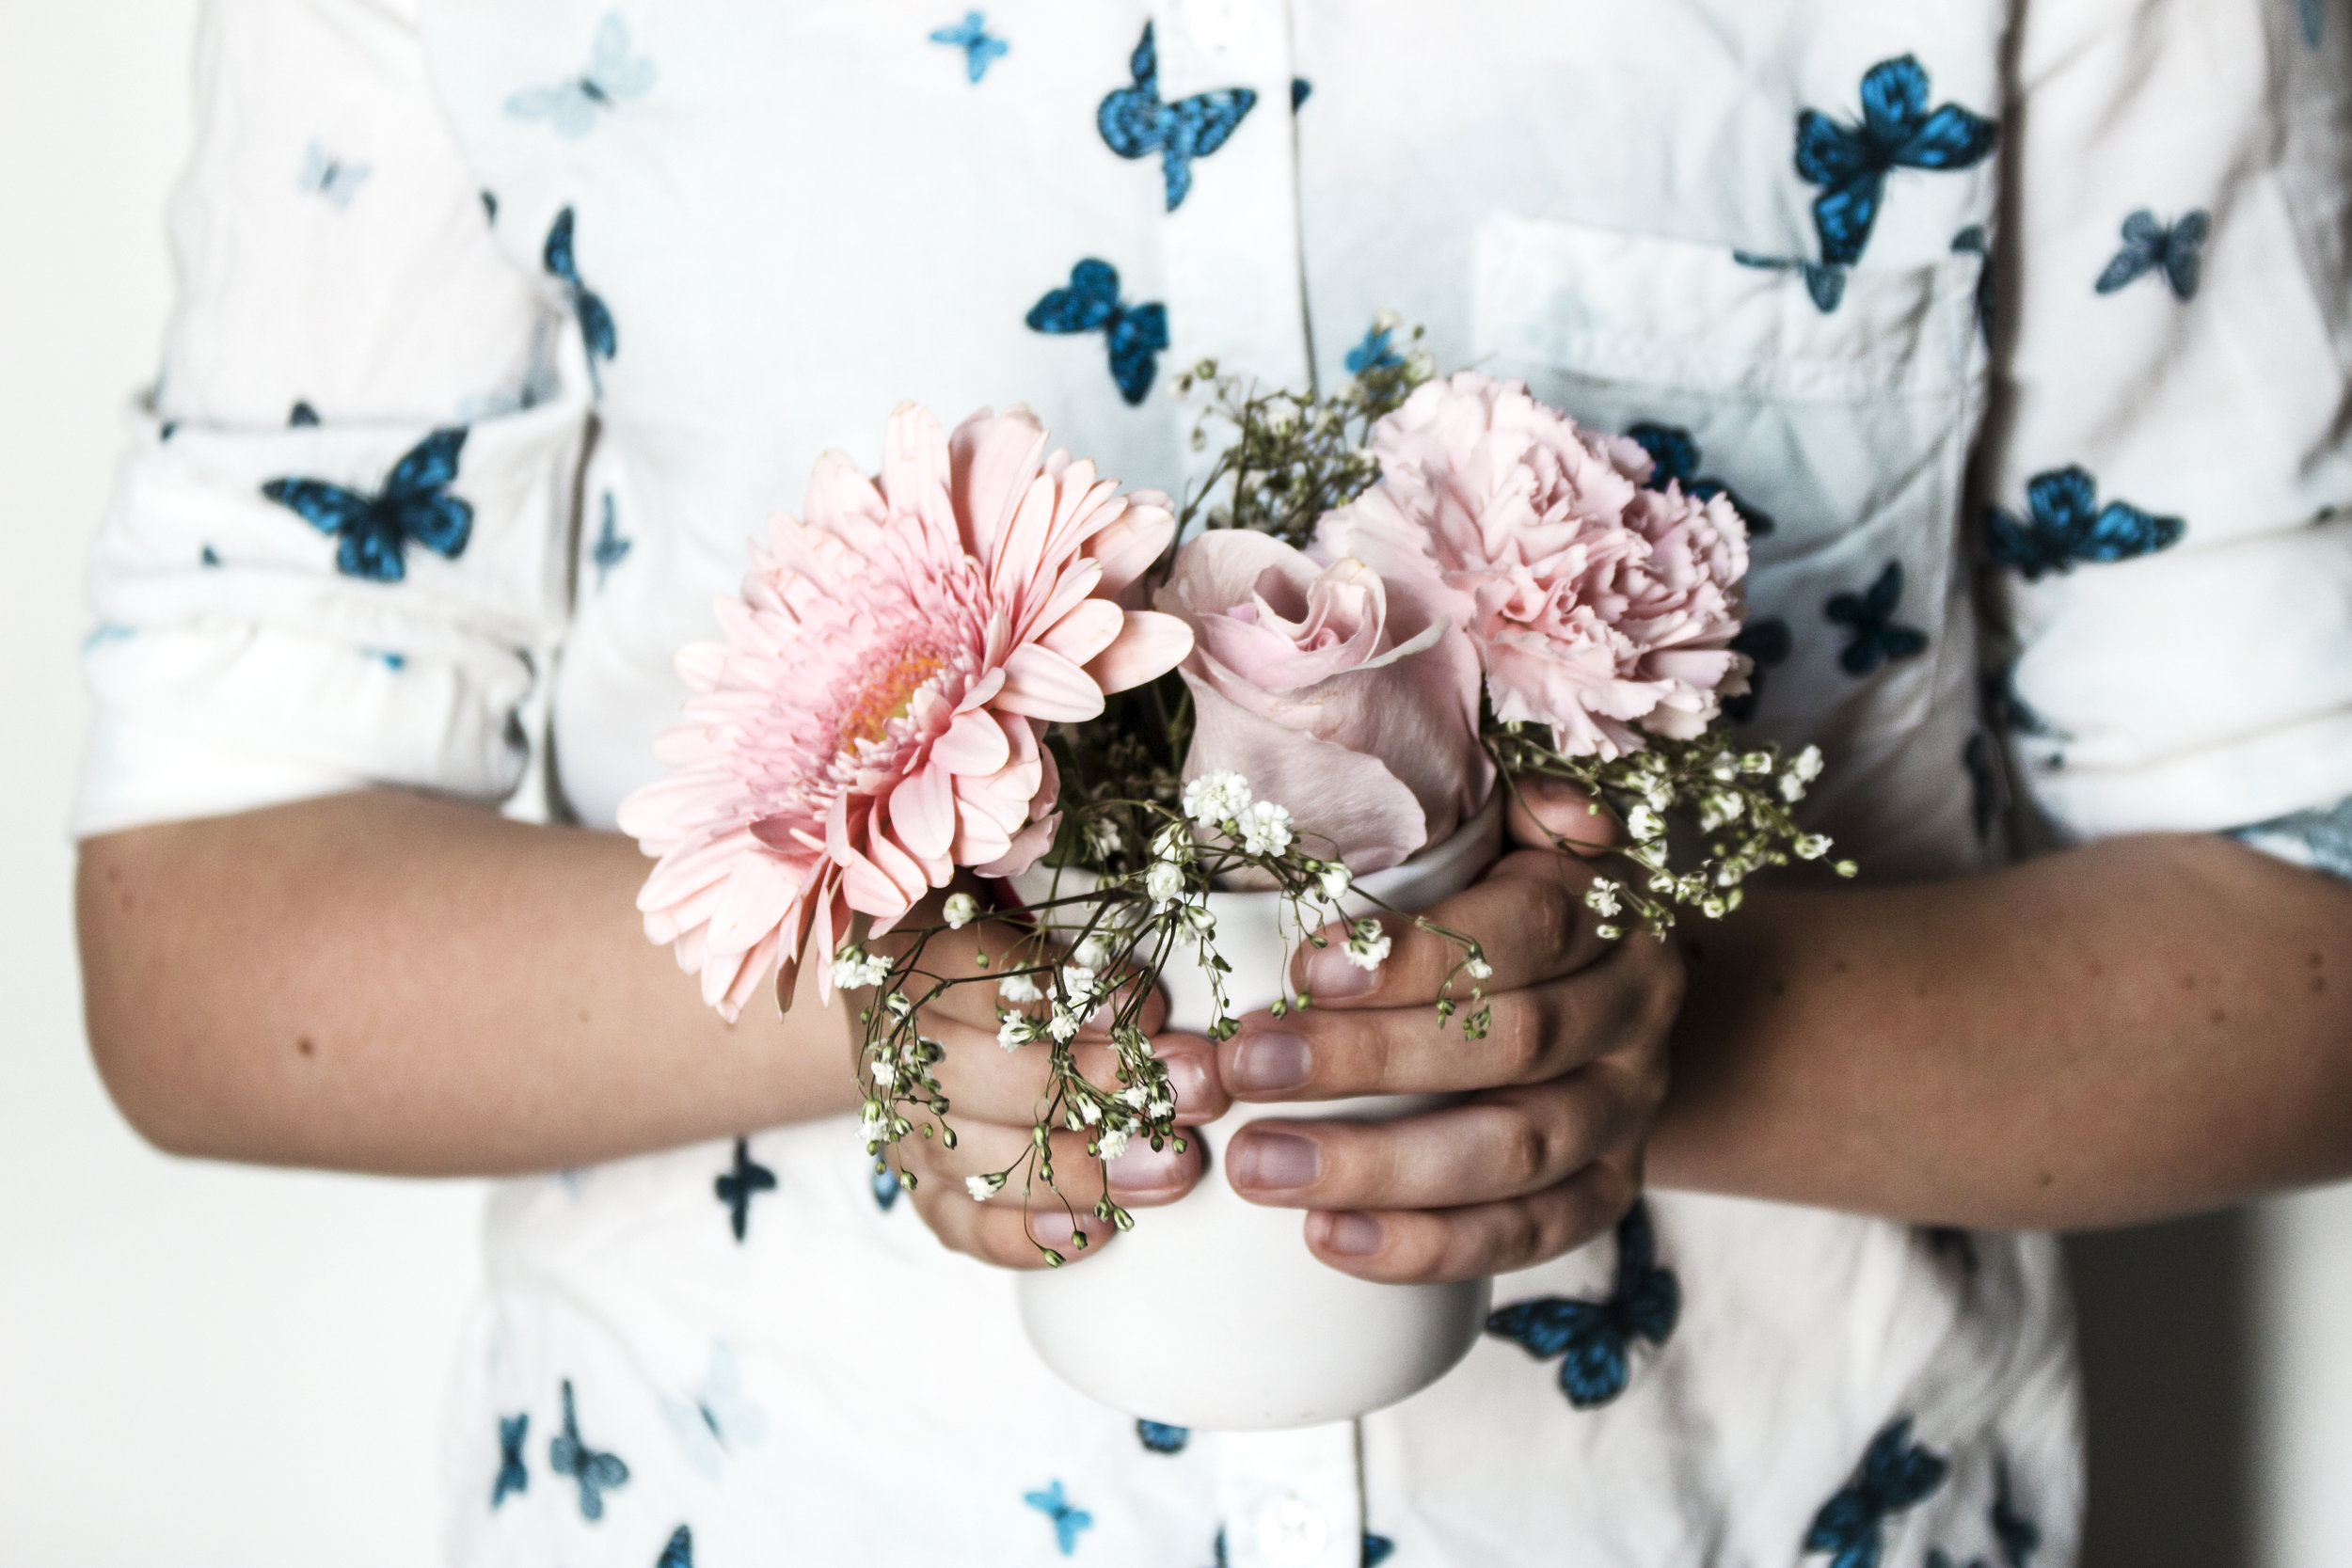 How to plan a memorable Mother's Day - Plan a Healthy Life